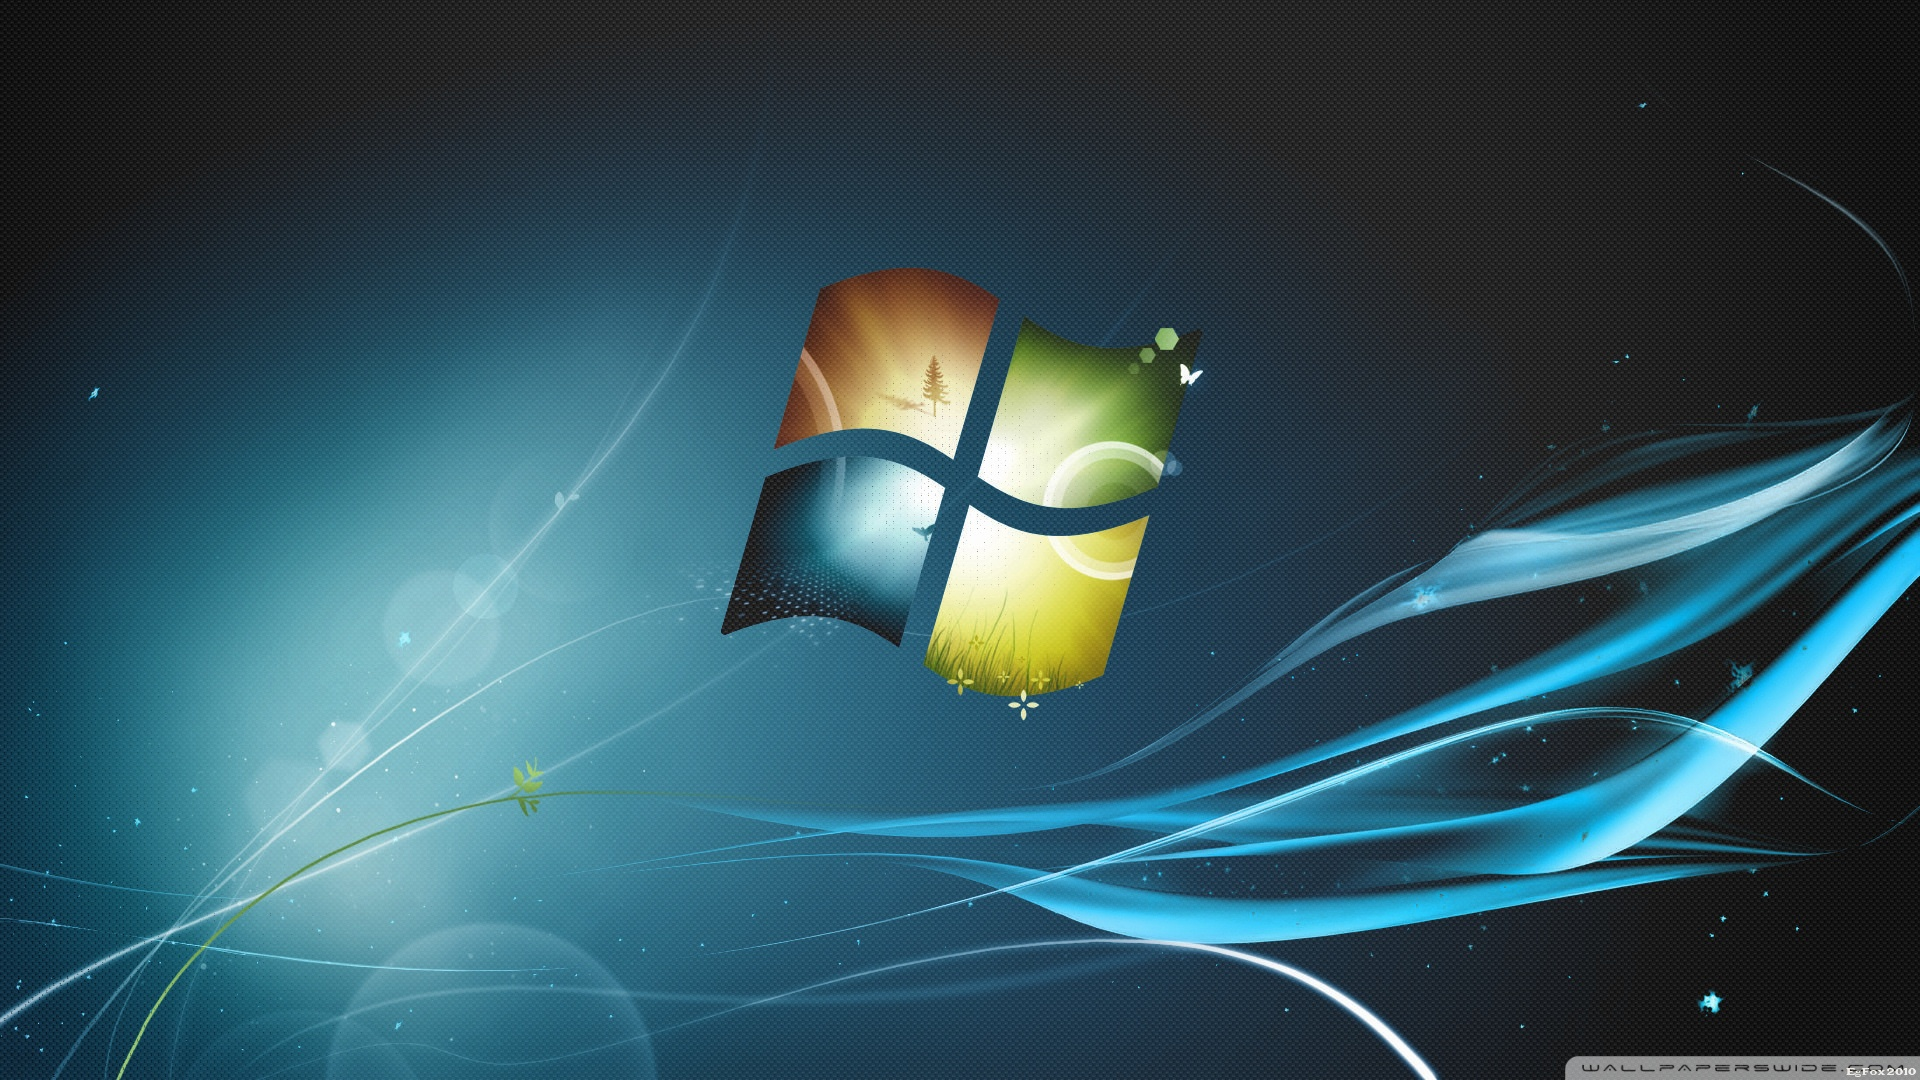 Windows 7 Wallpapers Top Free Windows 7 Backgrounds Wallpaperaccess